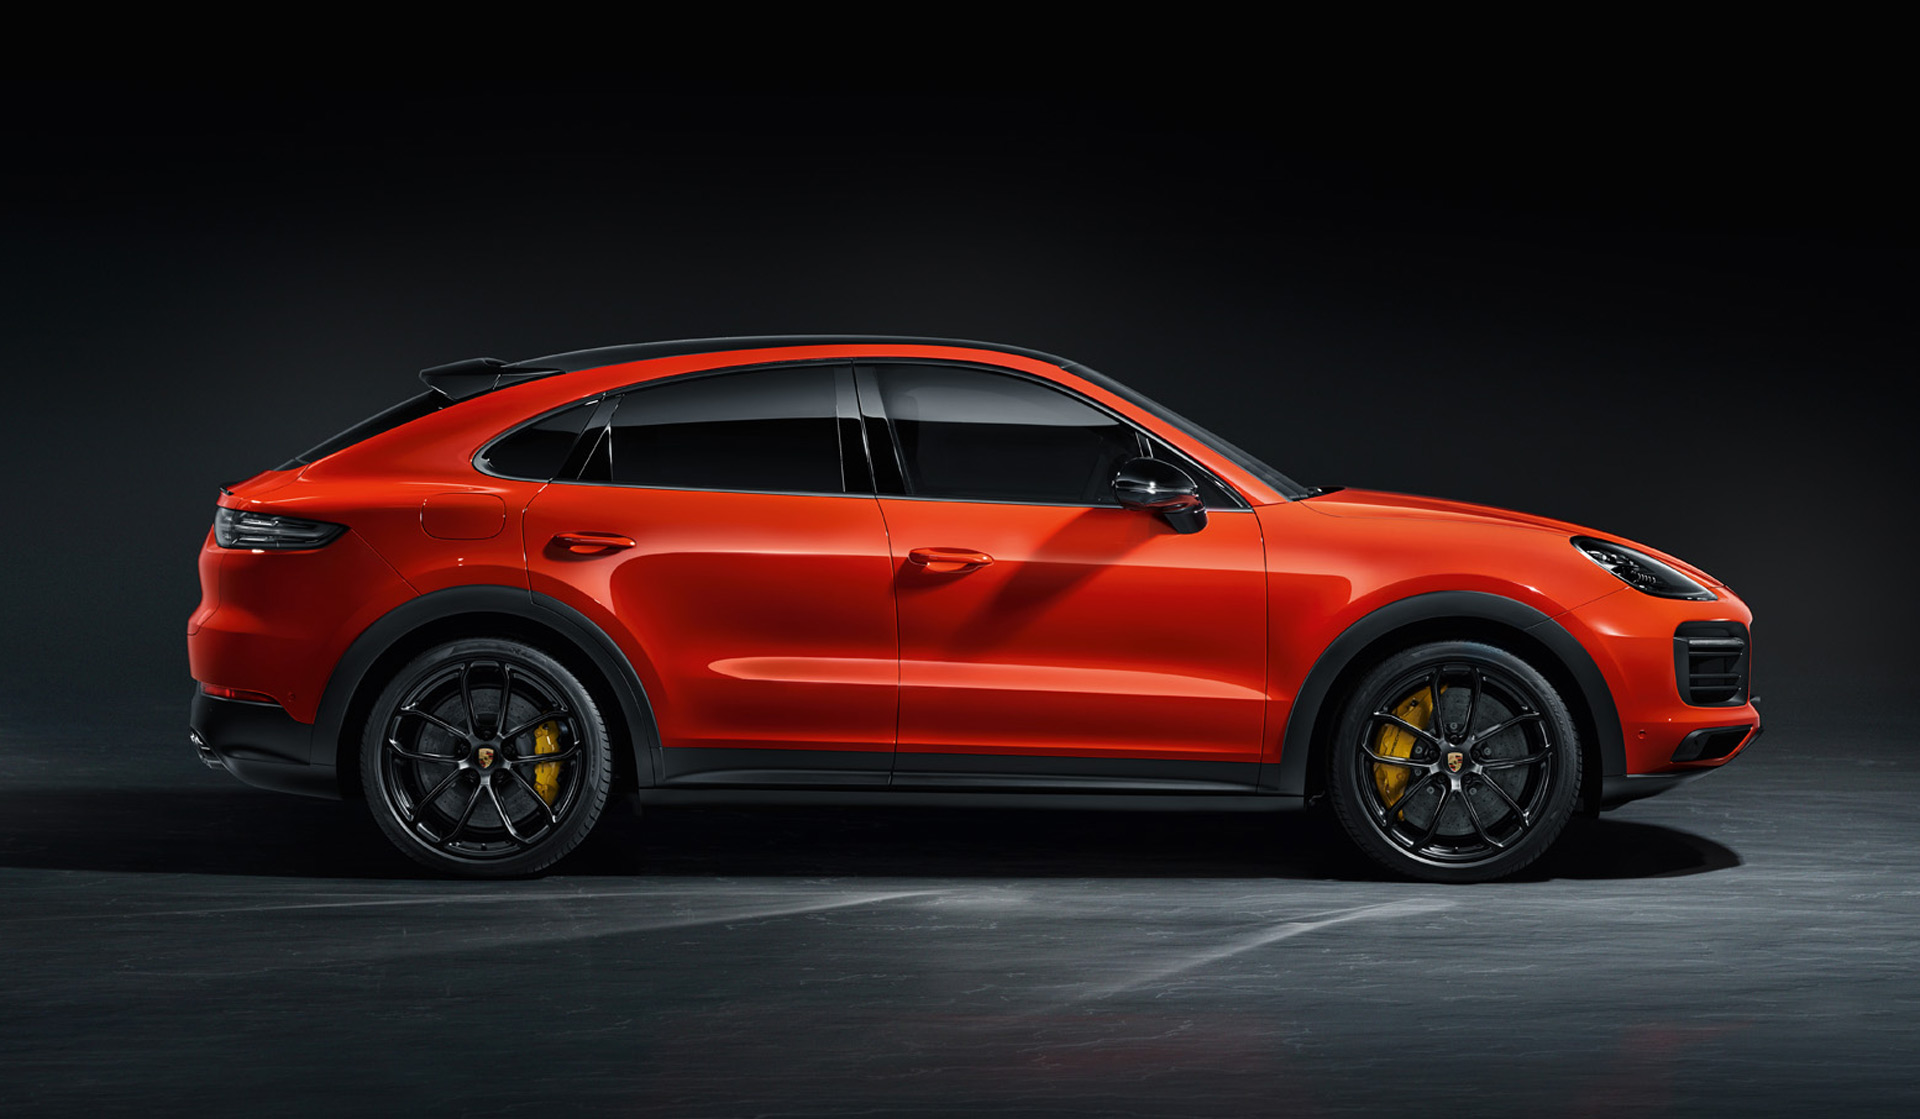 2020 Porsche Cayenne Coupe GT5 Gets Lambo Urus Engine >> Porsche Trademarks Gt5 Name Possibly For Hardcore Cayenne Coupe